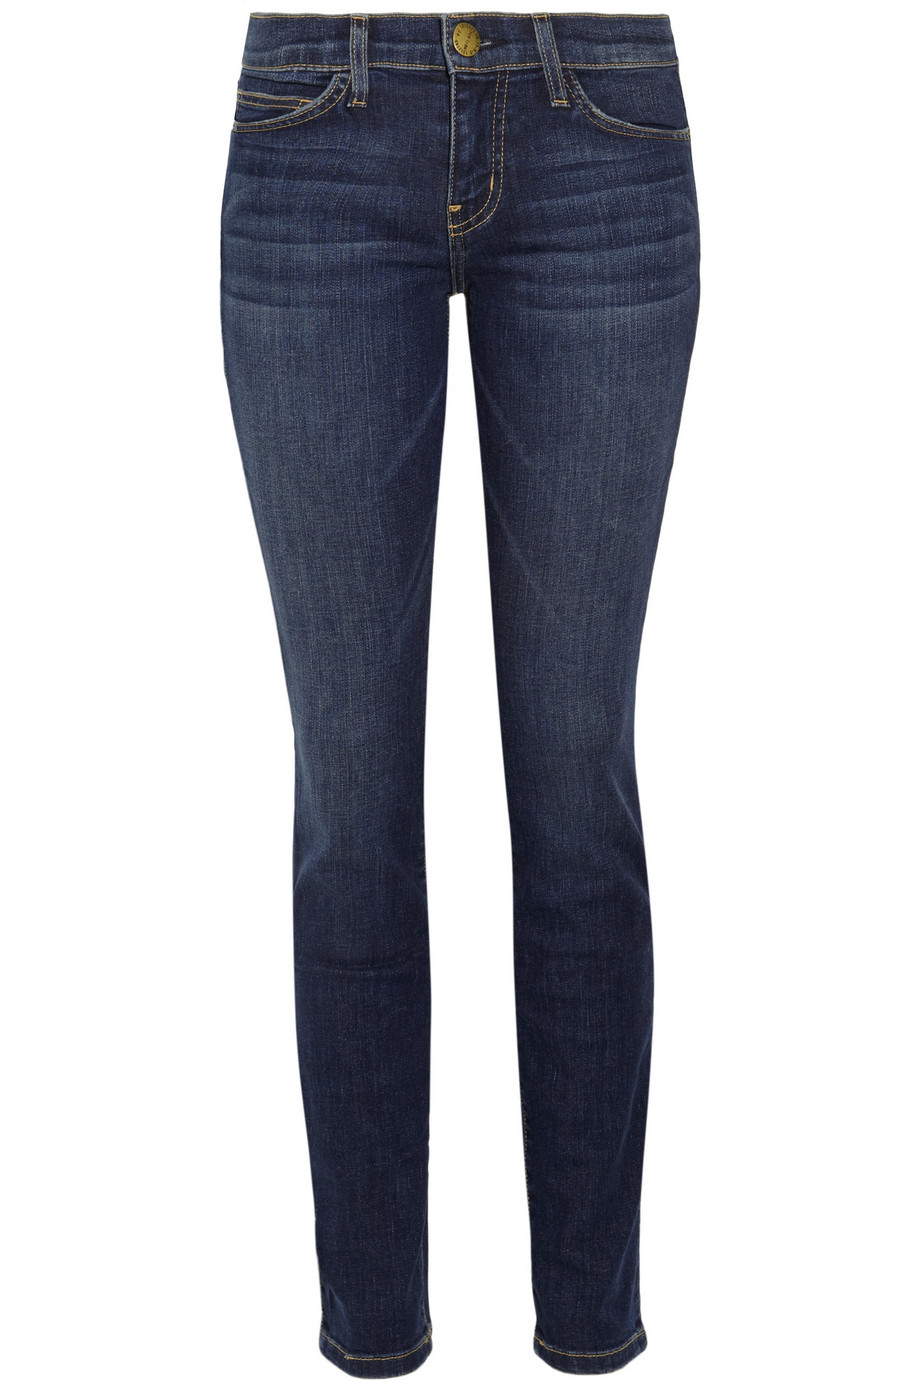 Low rise denim skinny jeans – Global fashion jeans collection